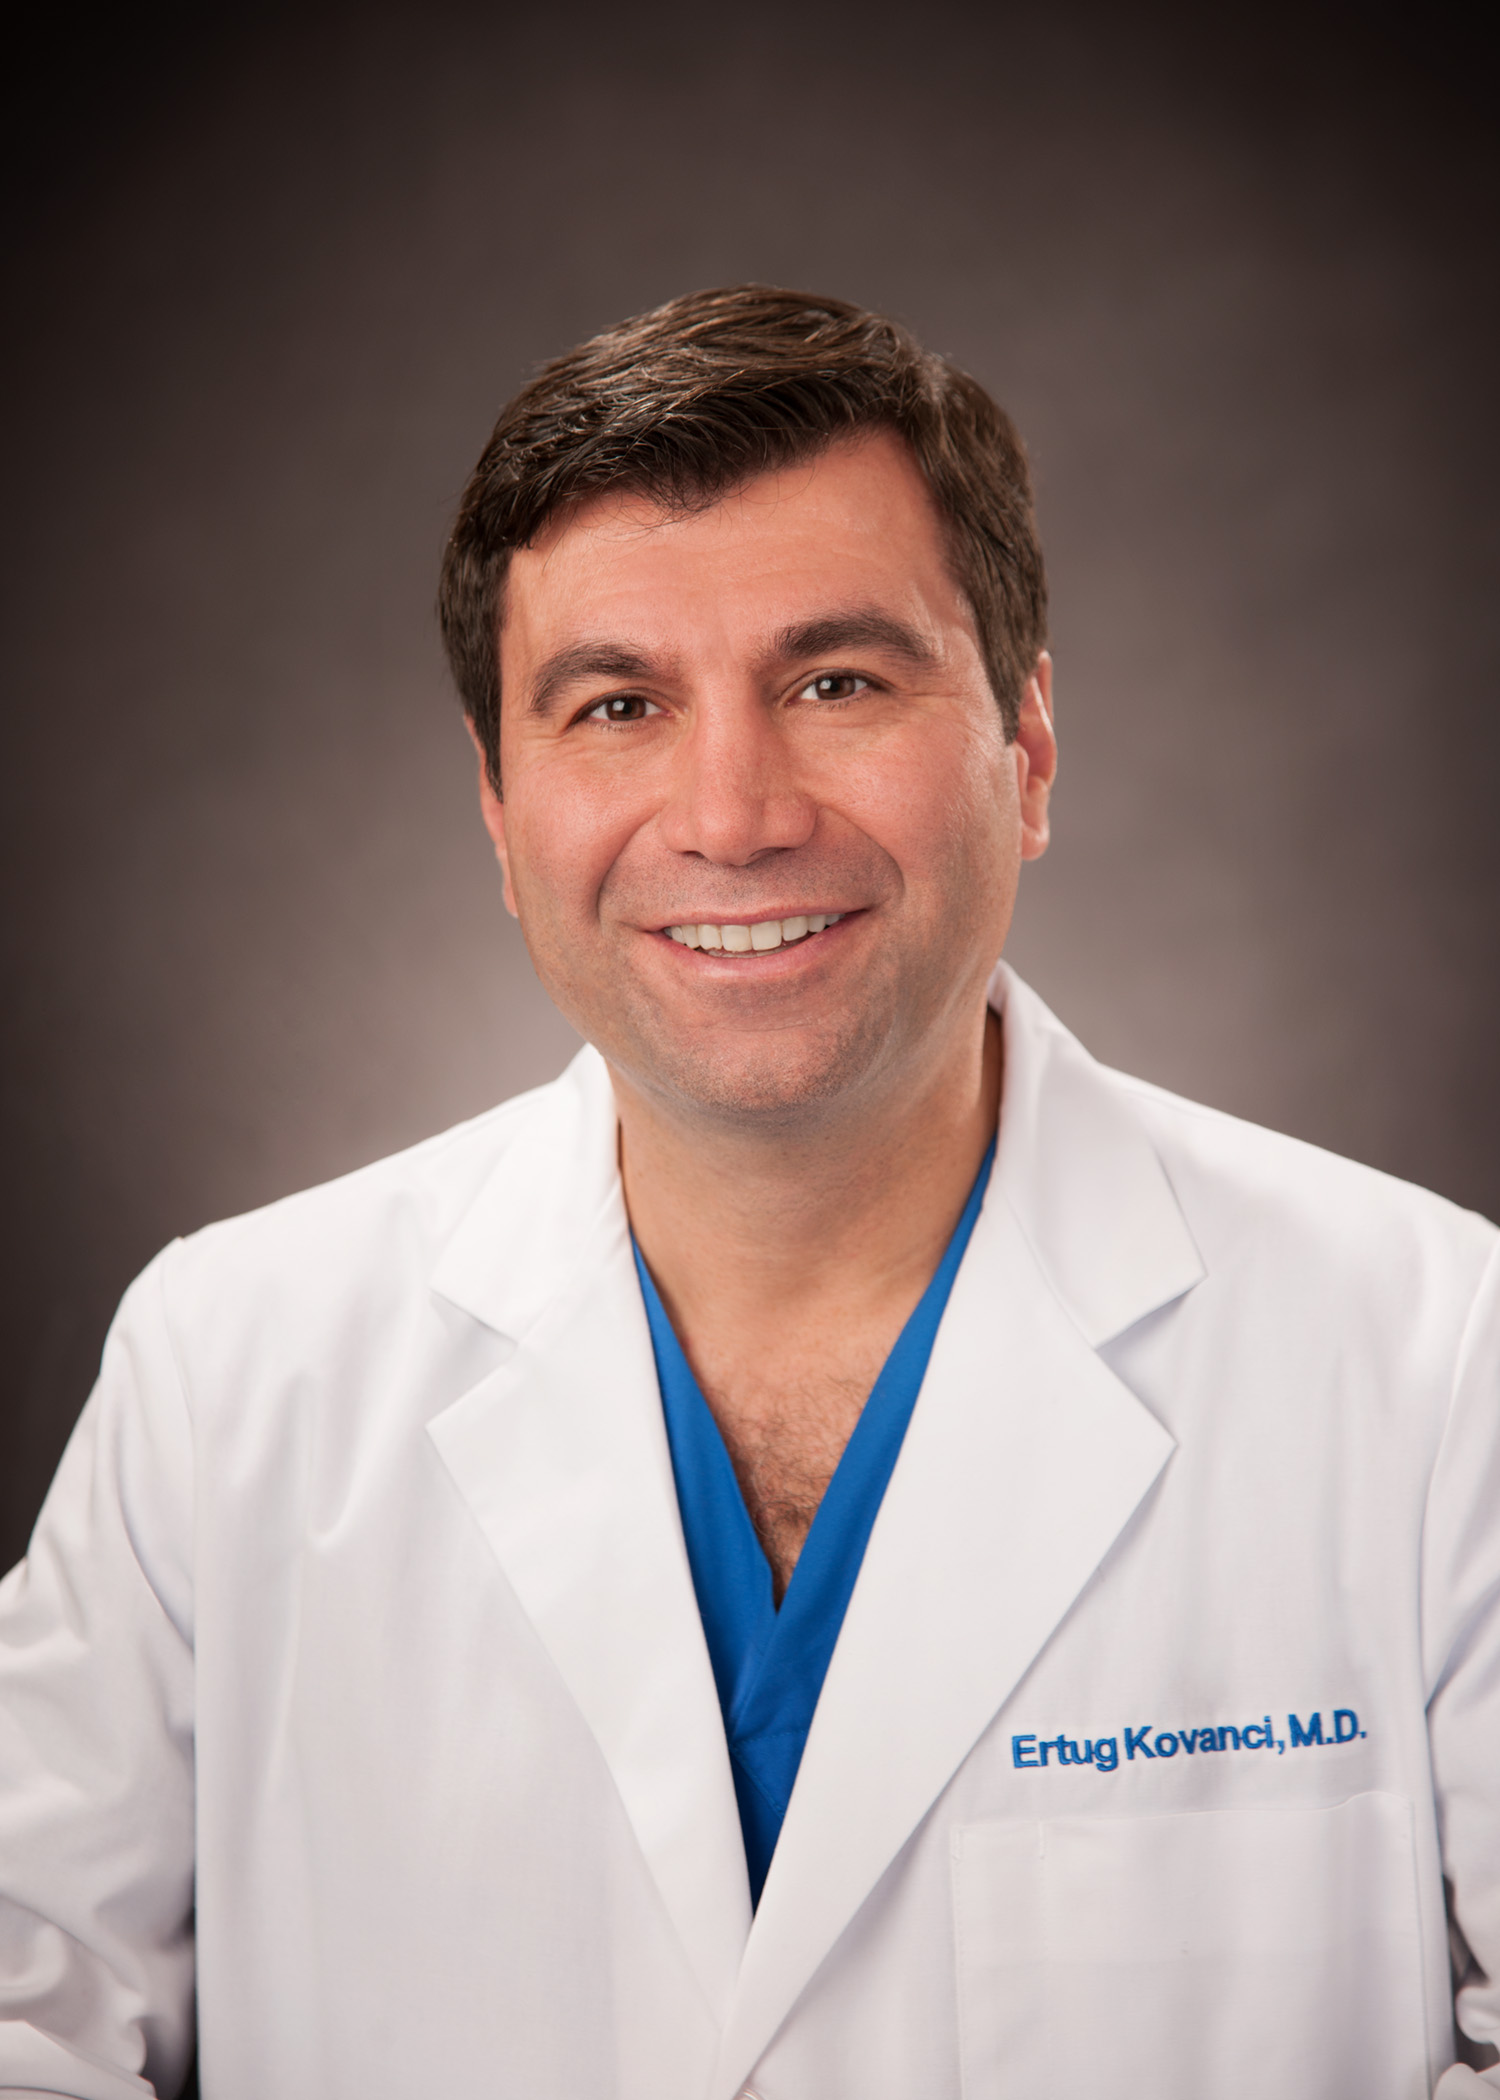 Dr. Ertug Kovanci, MD